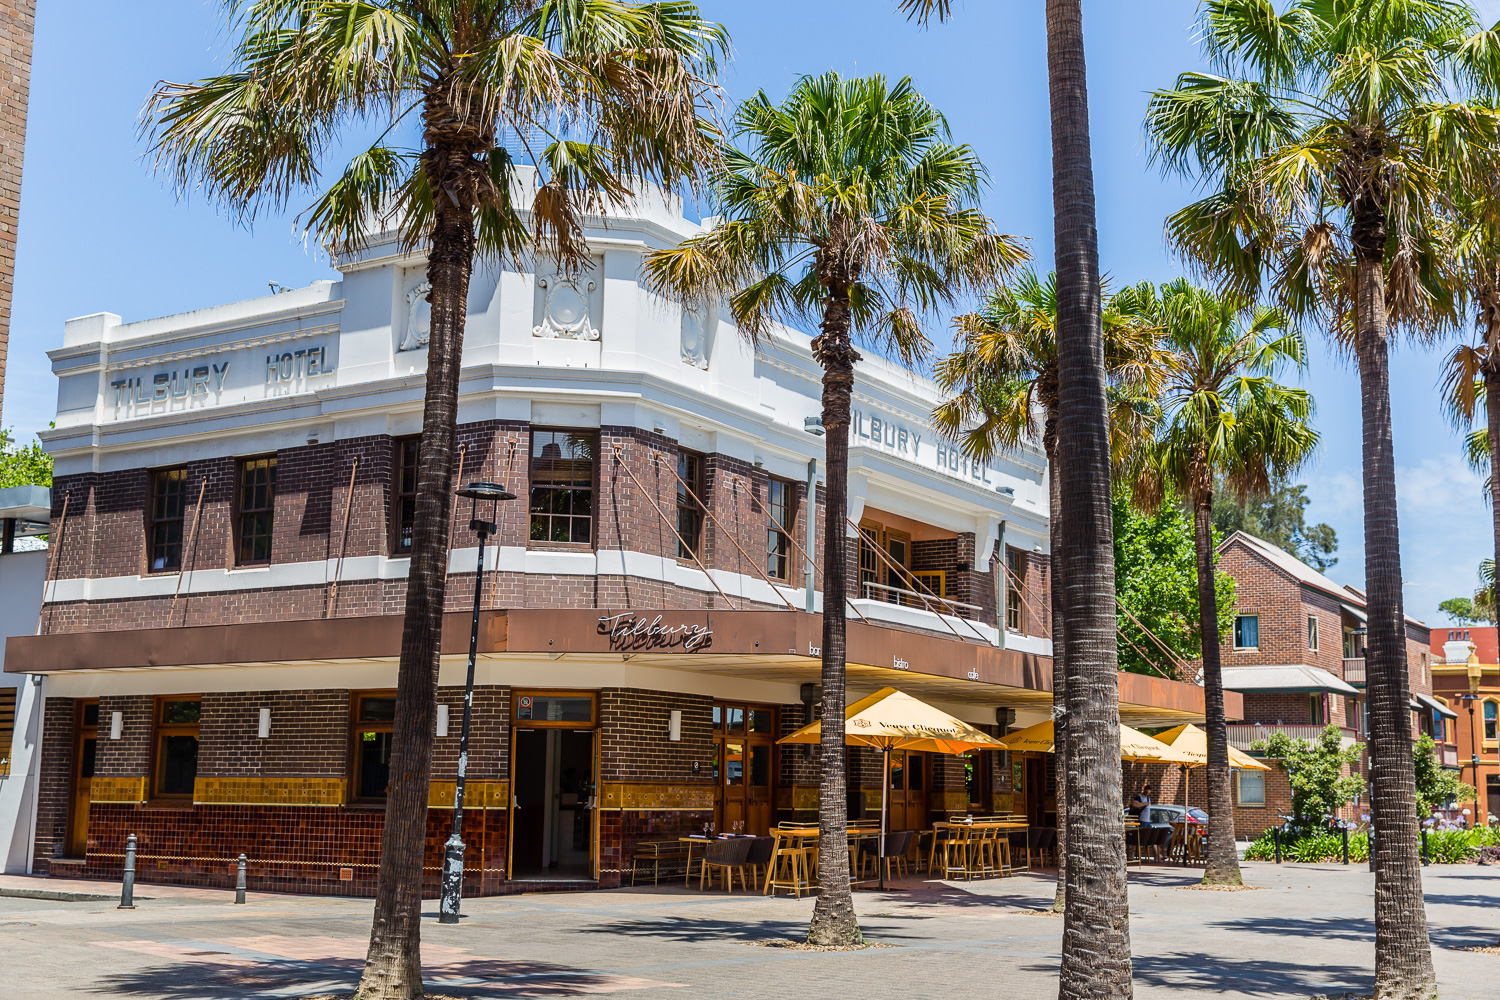 The Tilbury Hotel - Accommodation in Surfers Paradise